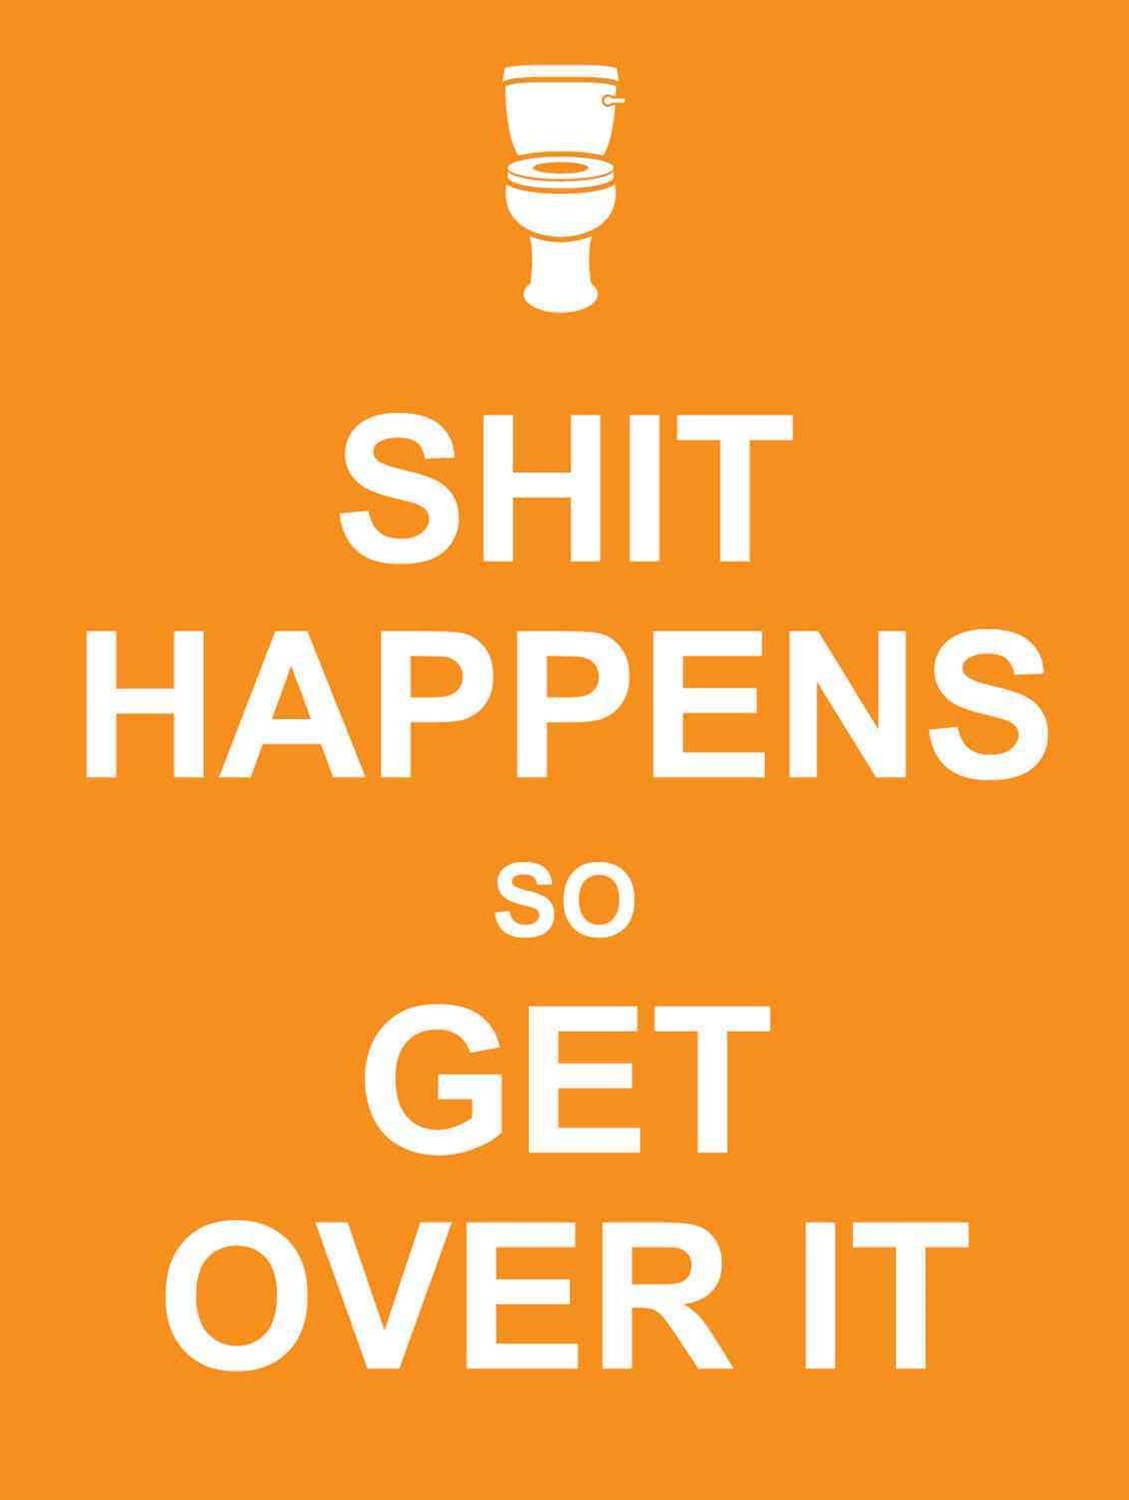 Shit Happens So Get Over It (orange)